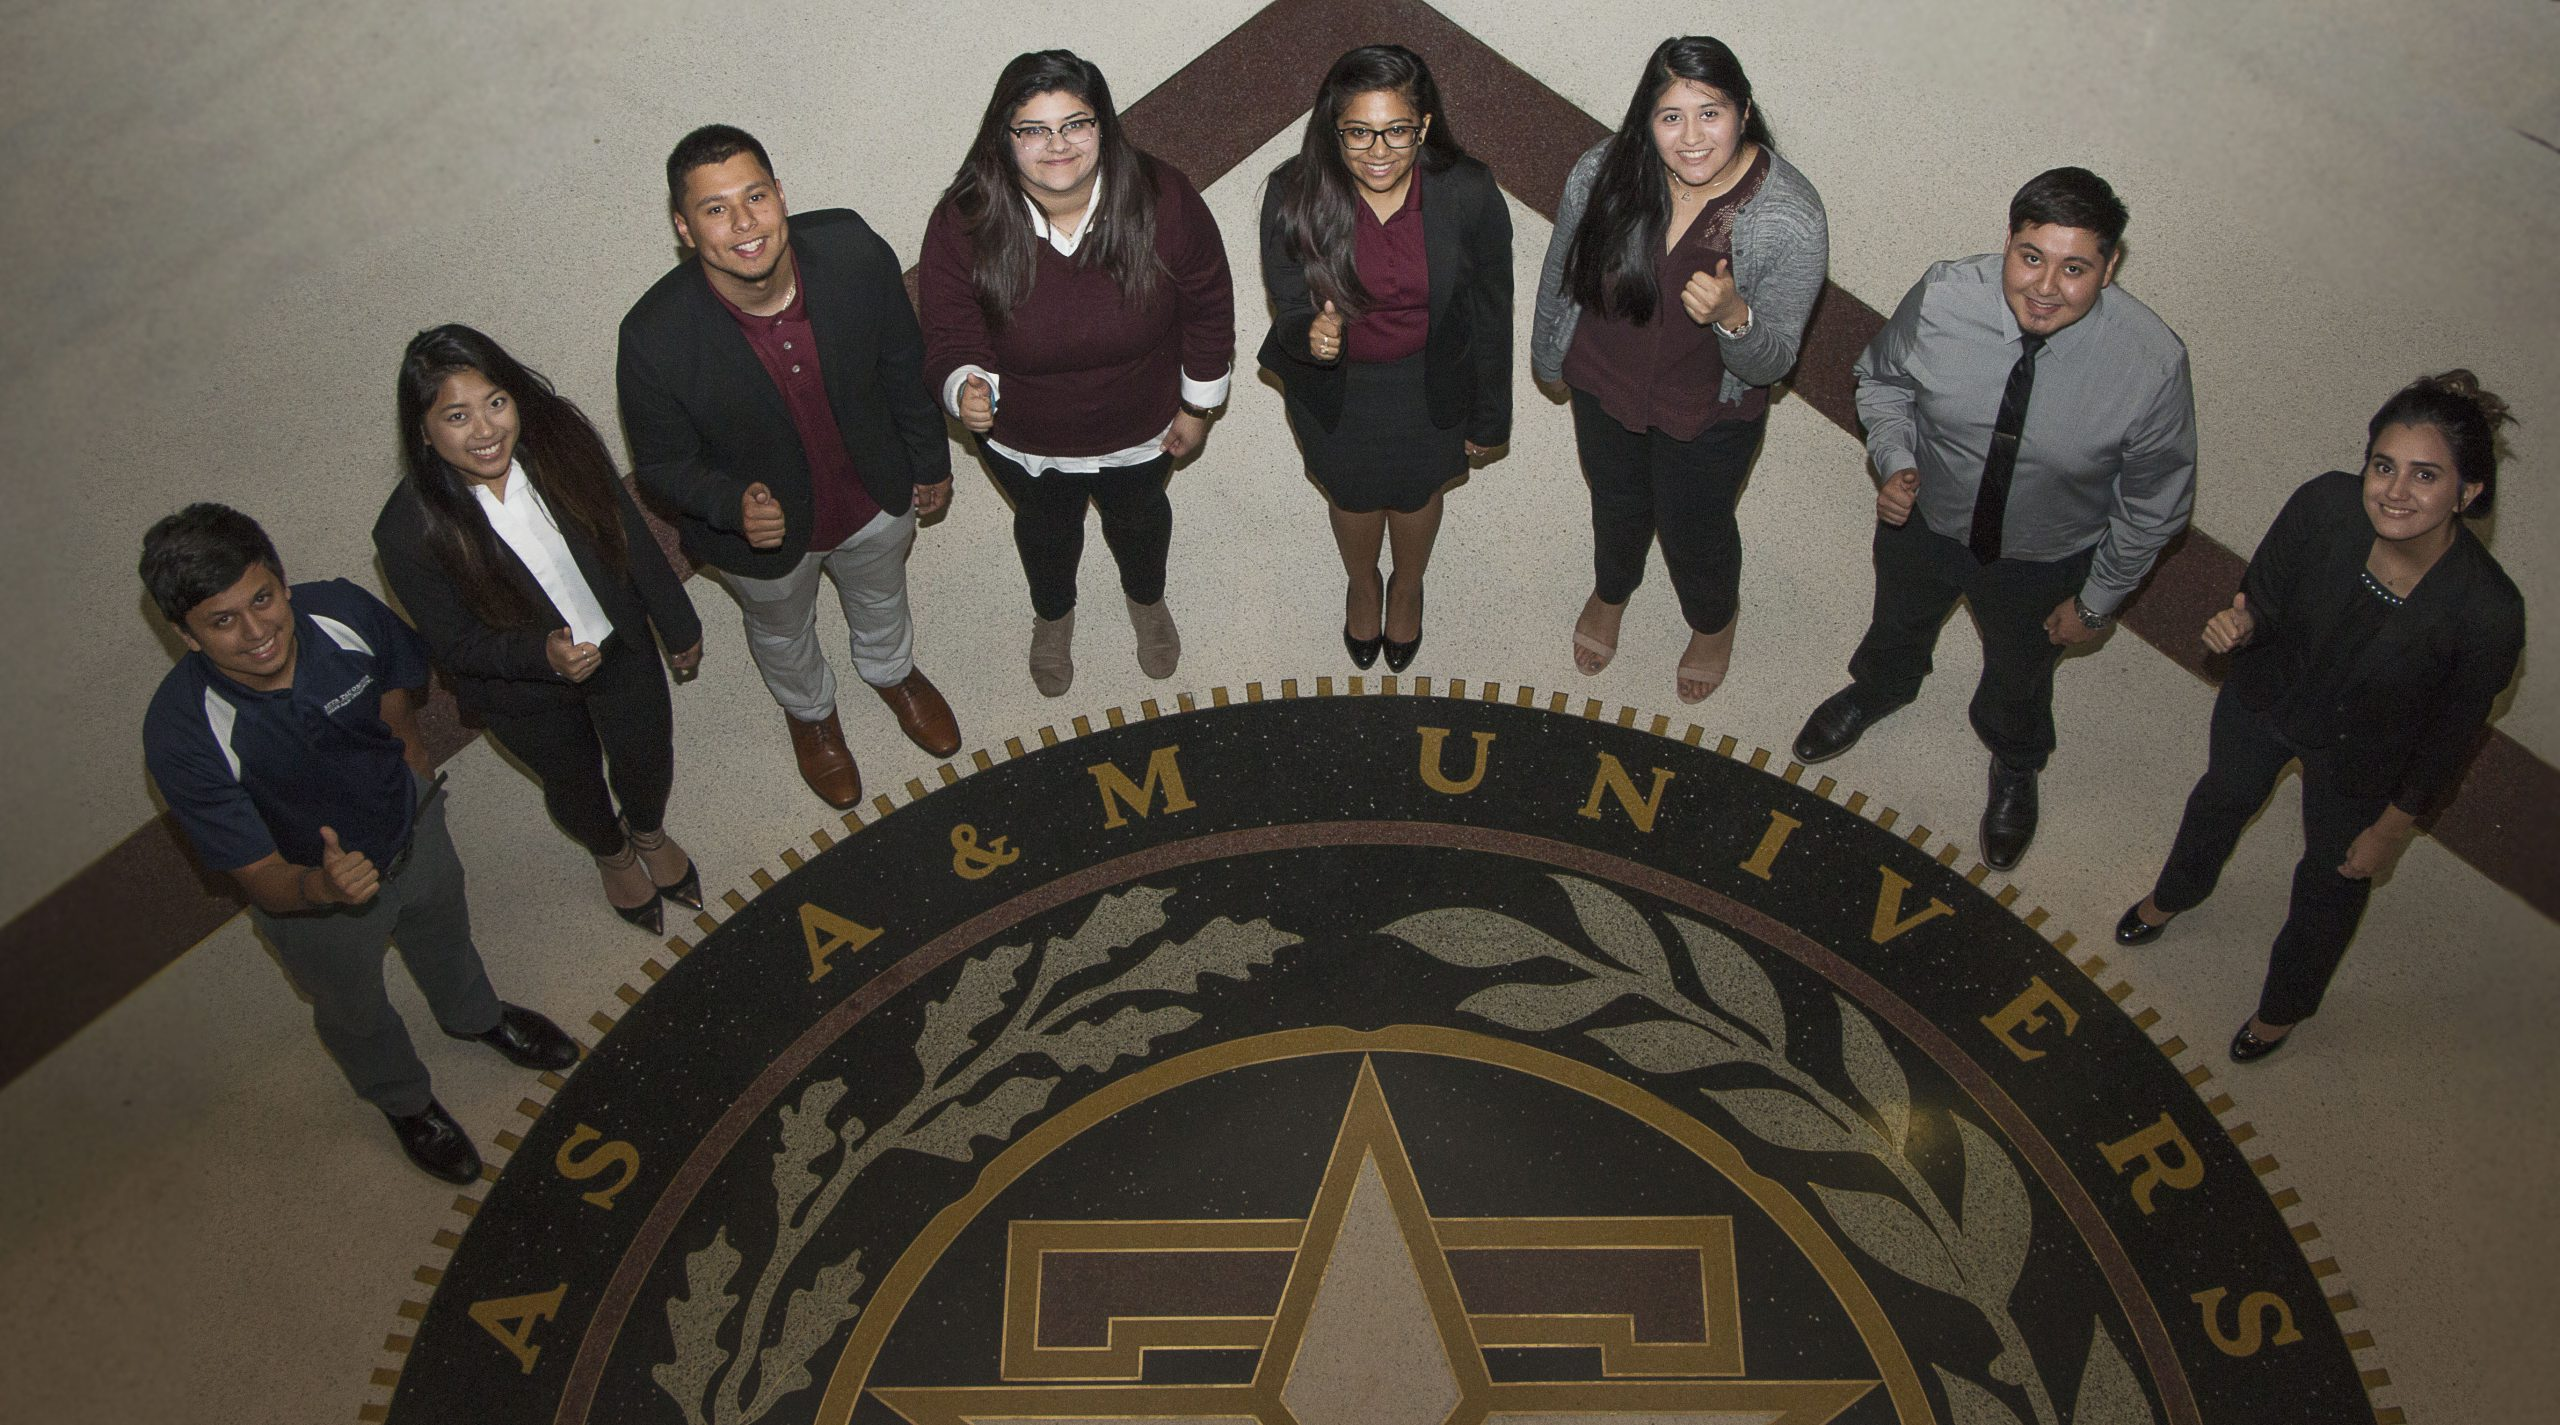 multicultural greek council around Aggie seal